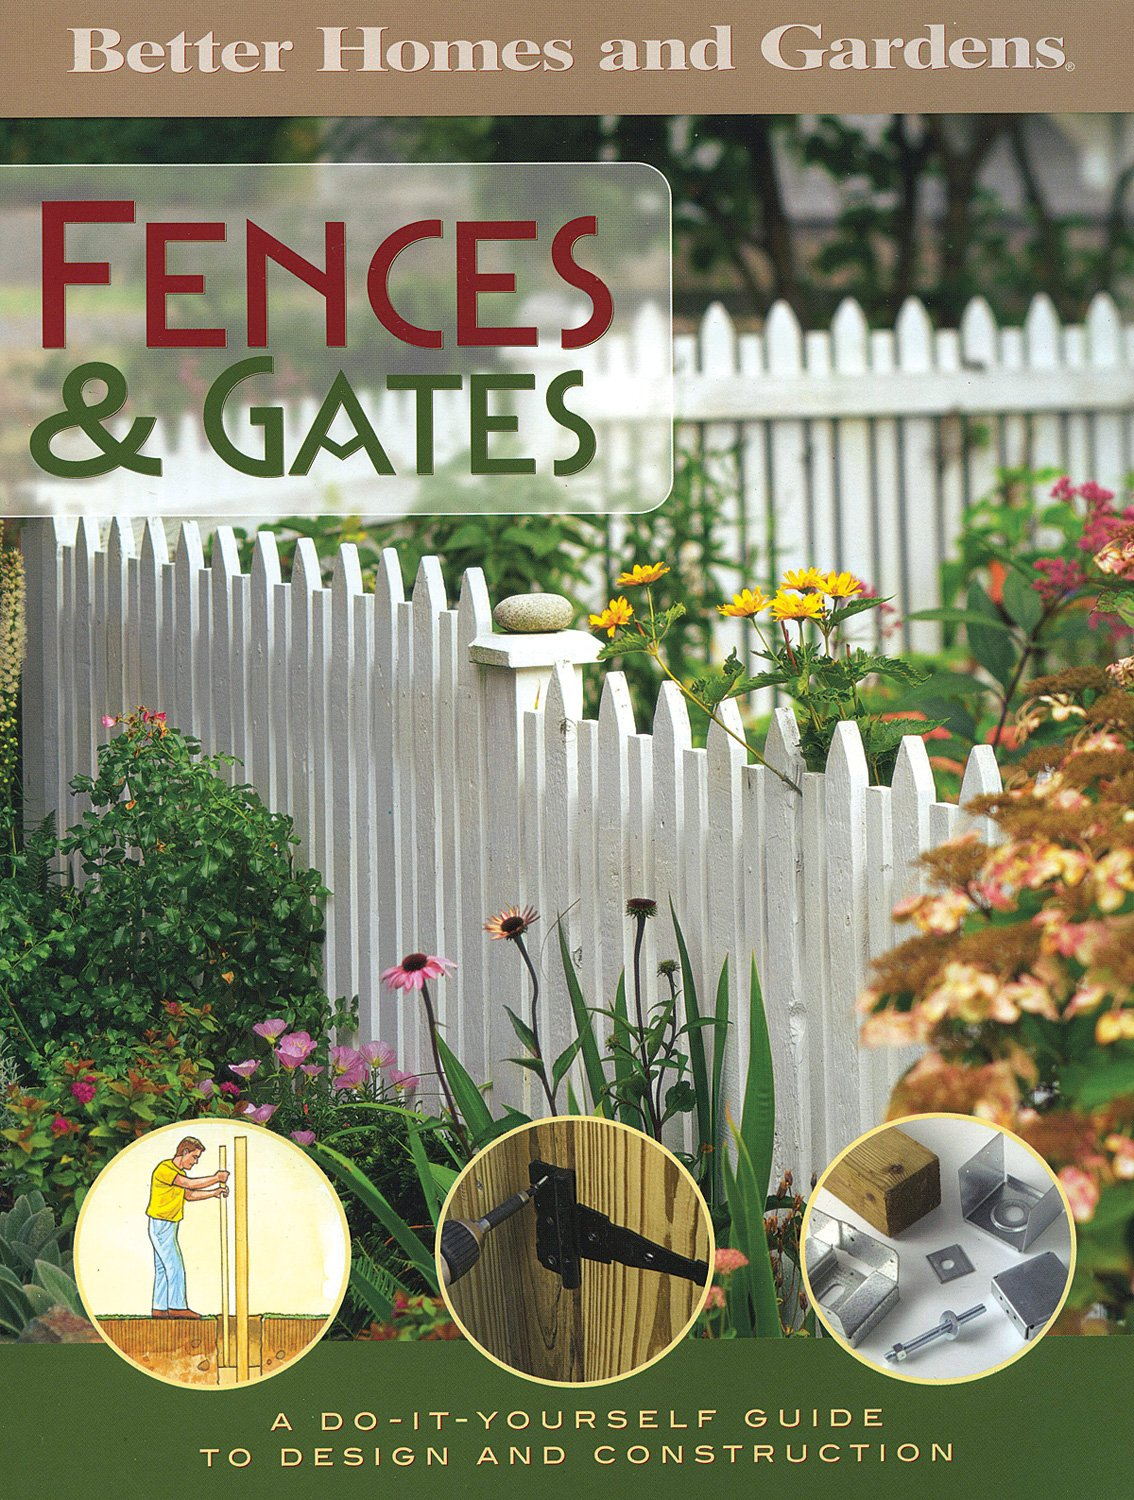 Better Homes And Gardens: Fences U0026 Gates A Do It Yourself Guide To Design  And Construction: Better Homes And Gardens: 9780696225468: Amazon.com: Books